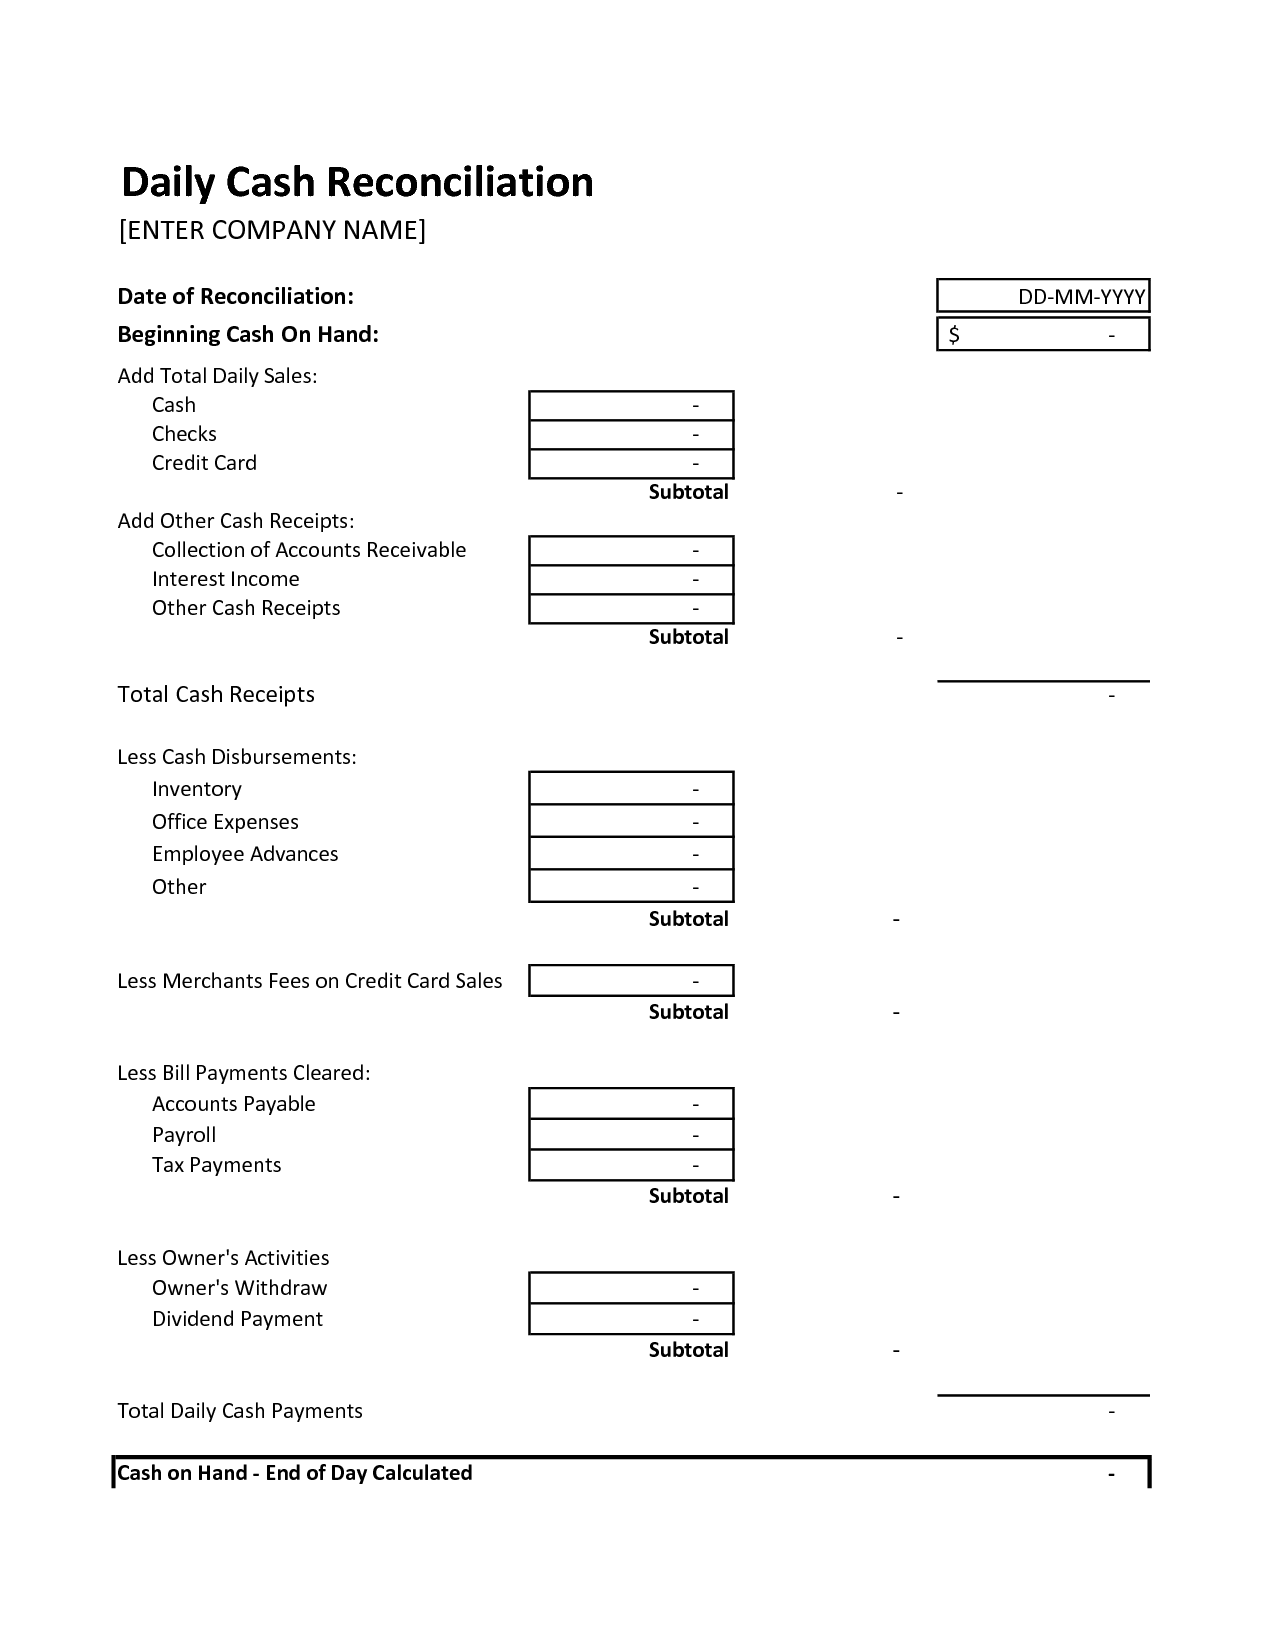 Simple Daily Cash Reconciliation Excel Template Throughout Daily Cash Reconciliation Excel Template Download For Free